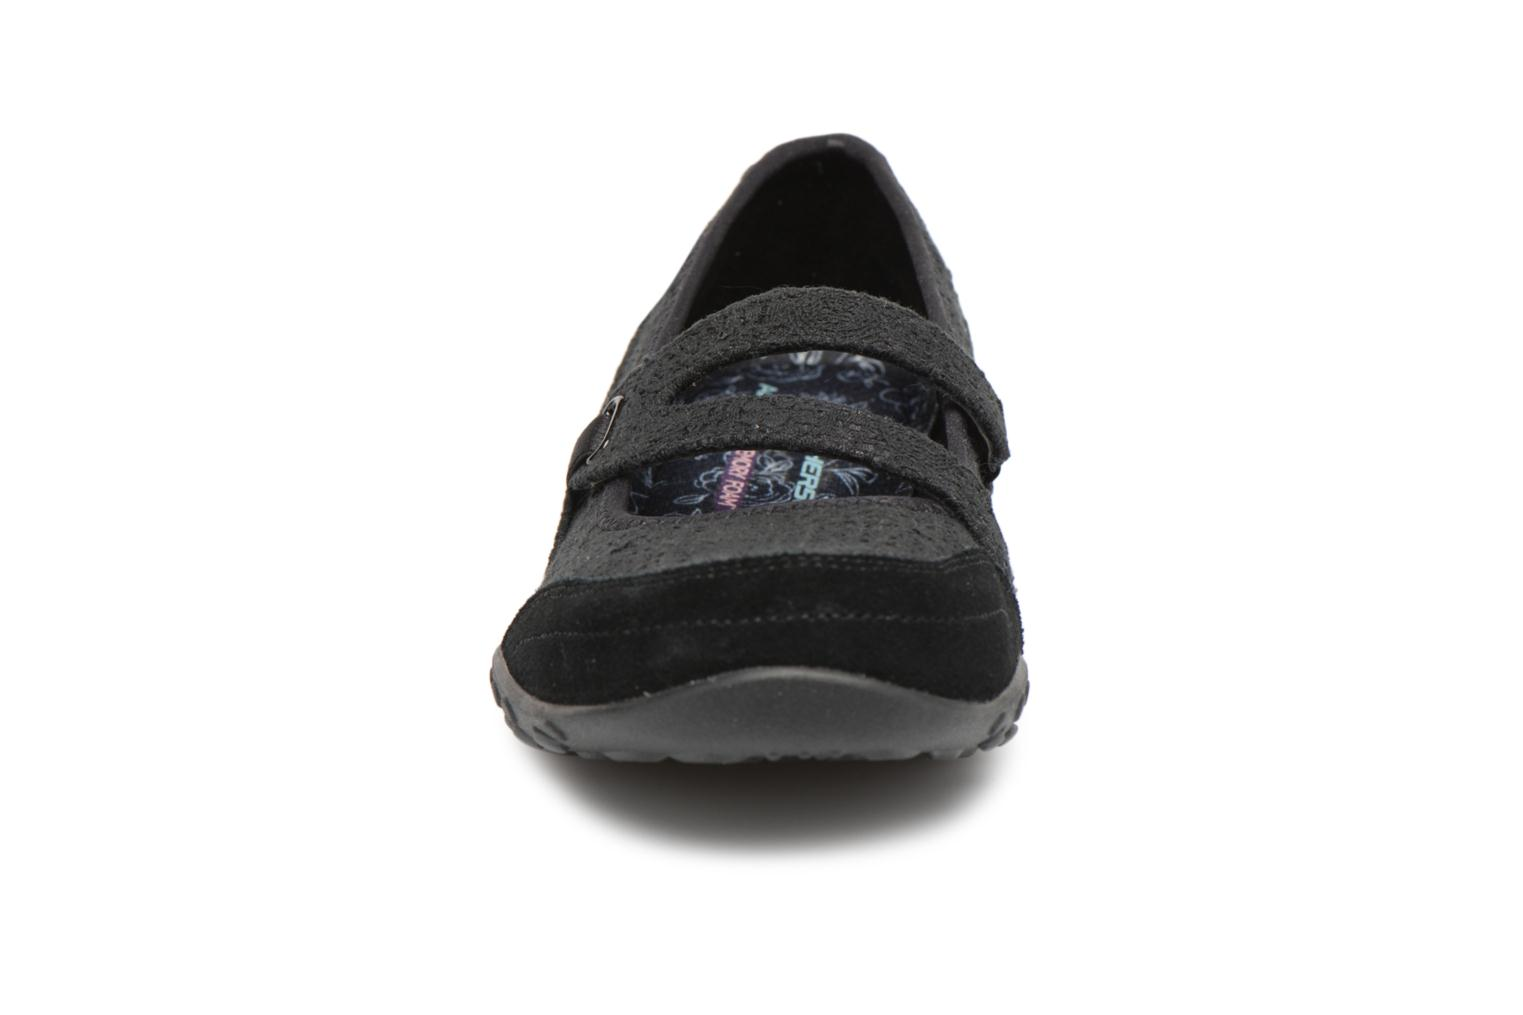 Ballerines Skechers Breathe-Easy Pretty Swagger Noir vue portées chaussures